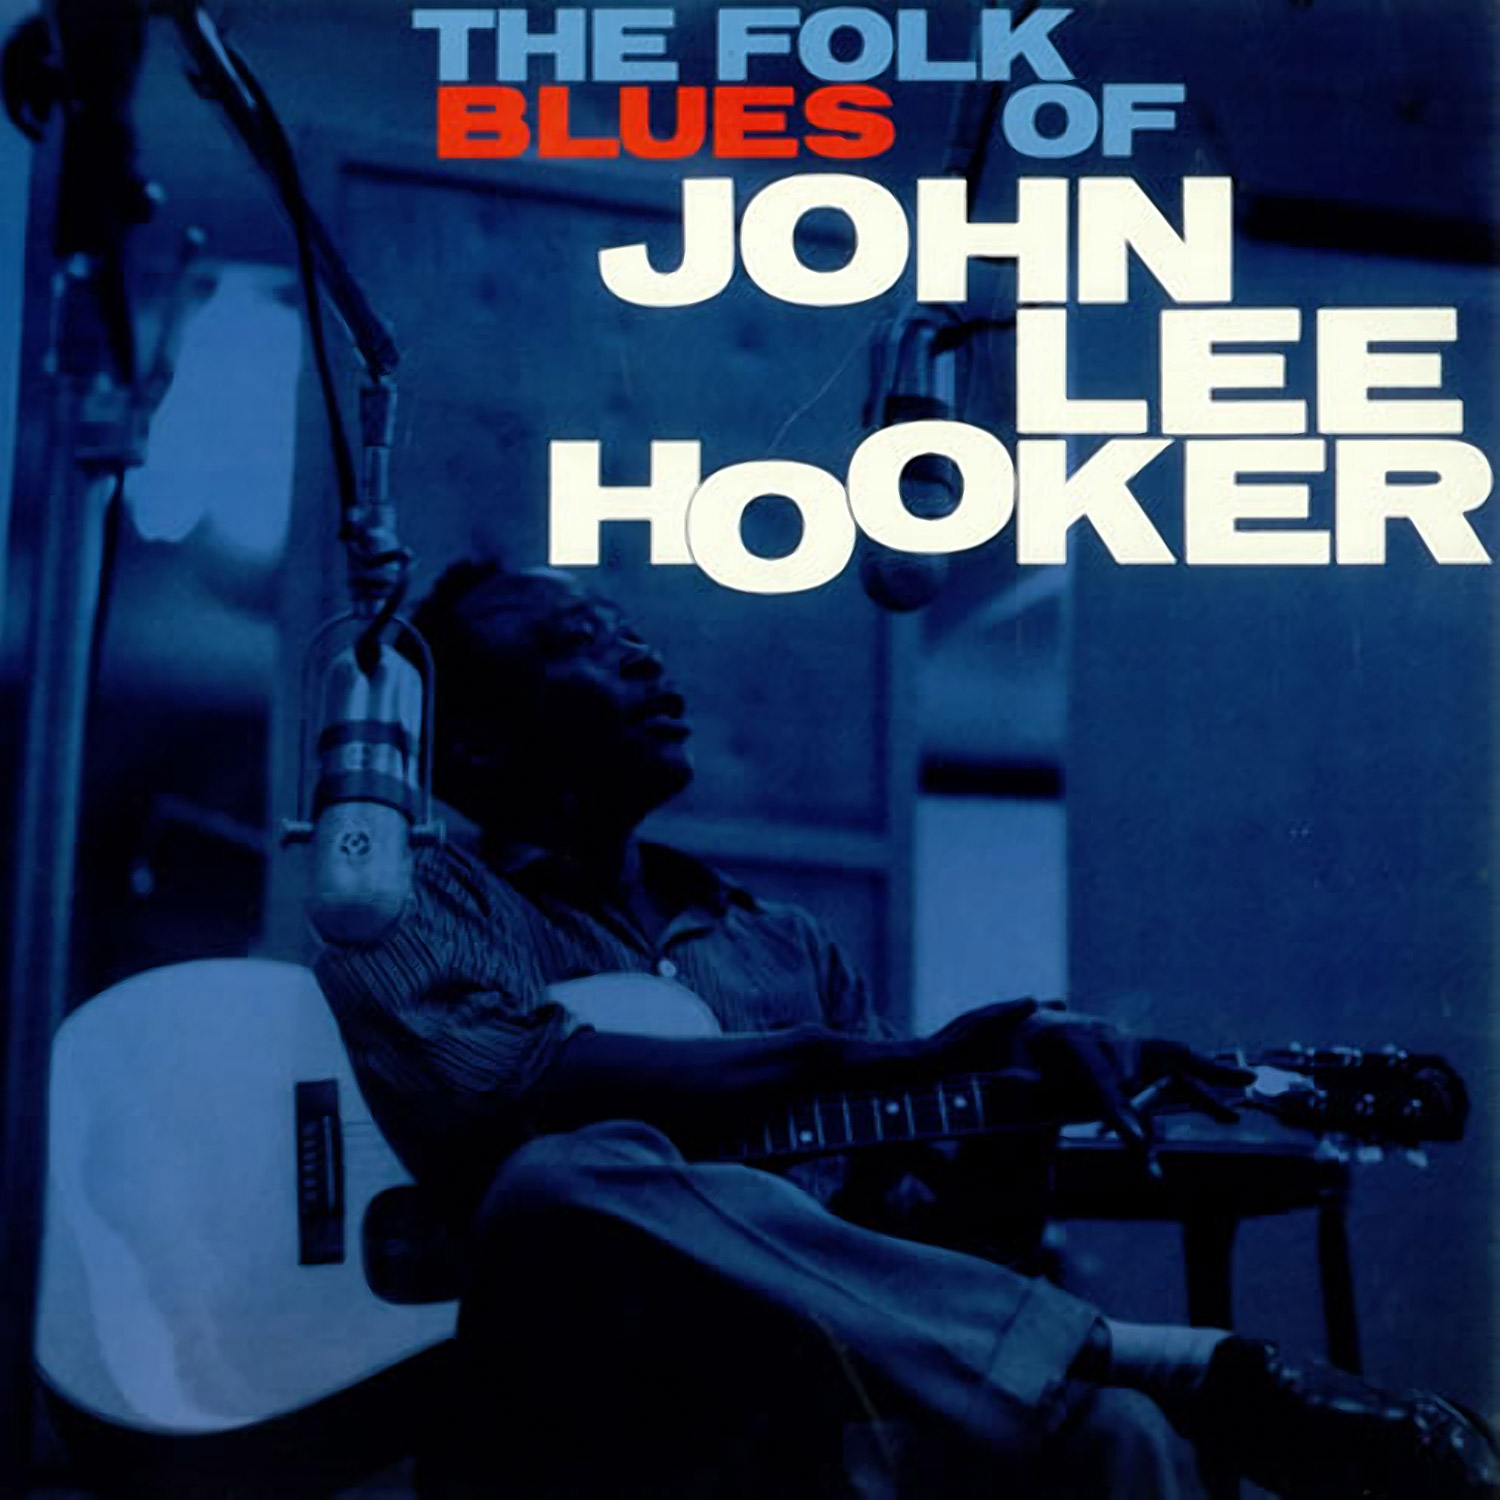 The-Folk-Blues-of-John-Lee-Hooker